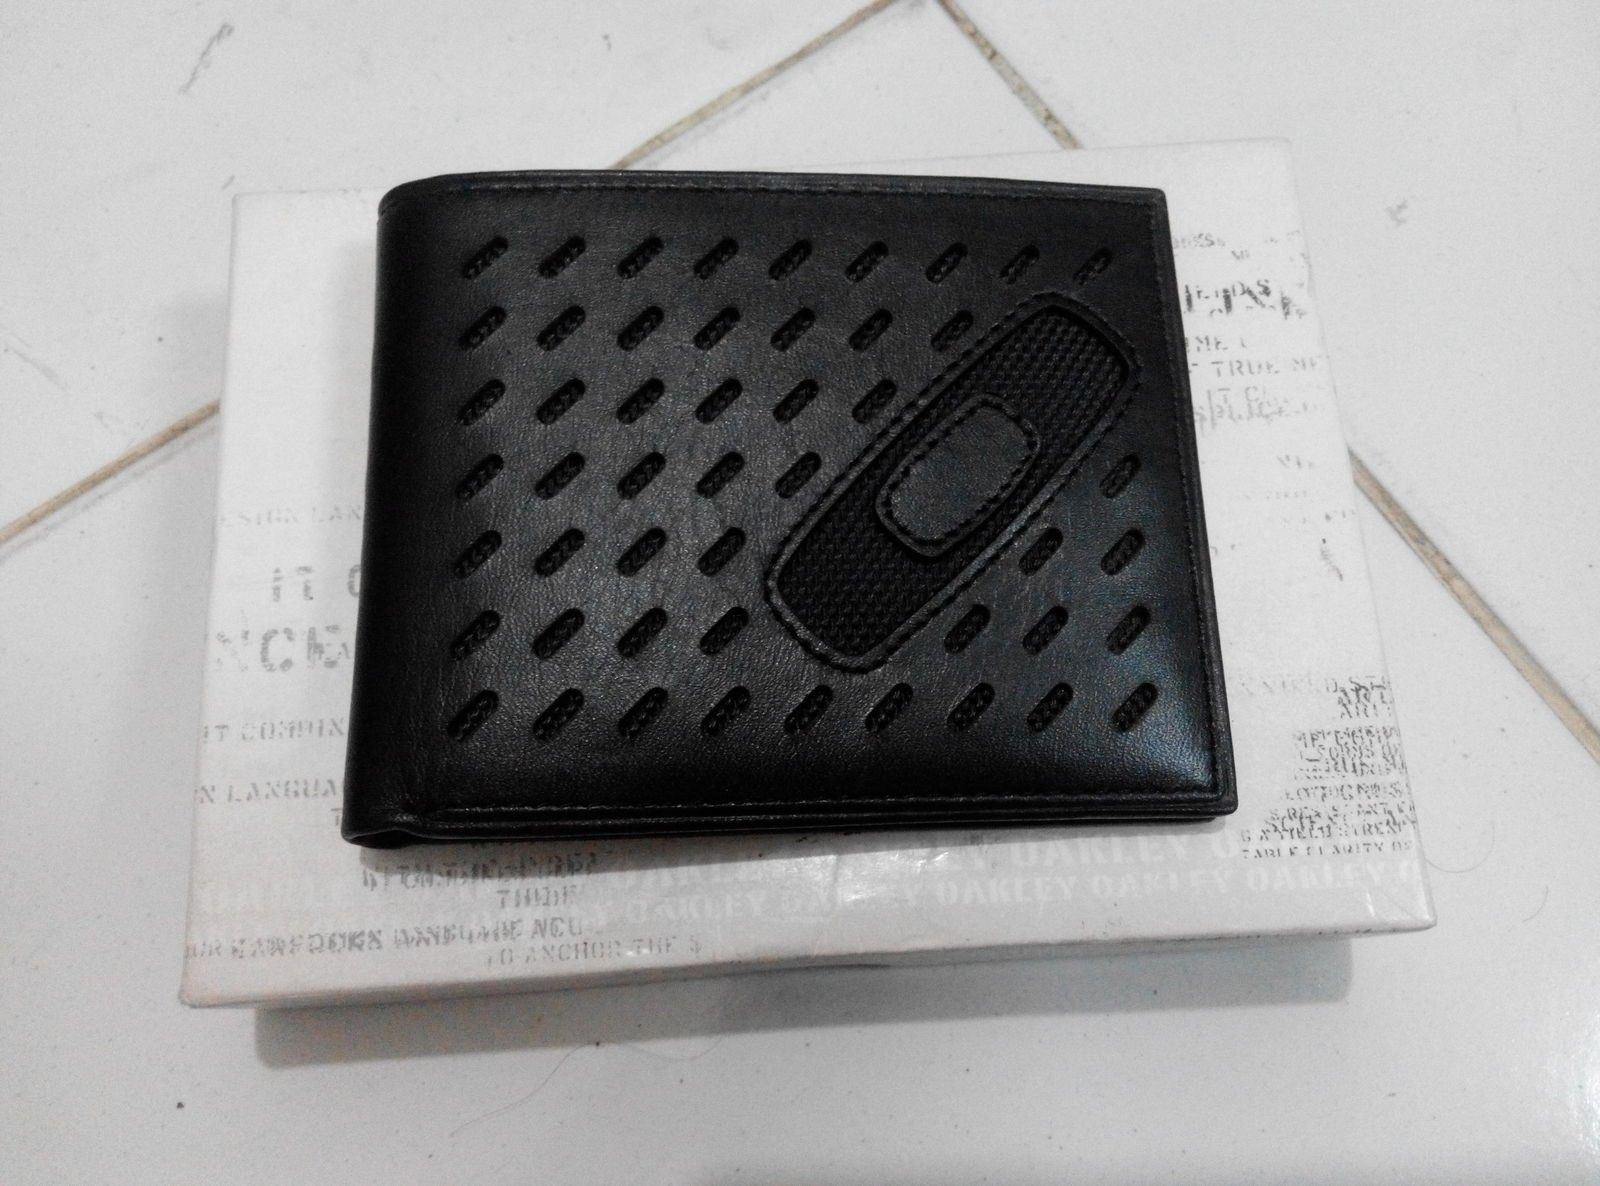 Oakley square o perf wallet - IMG_20150902_175415.jpg